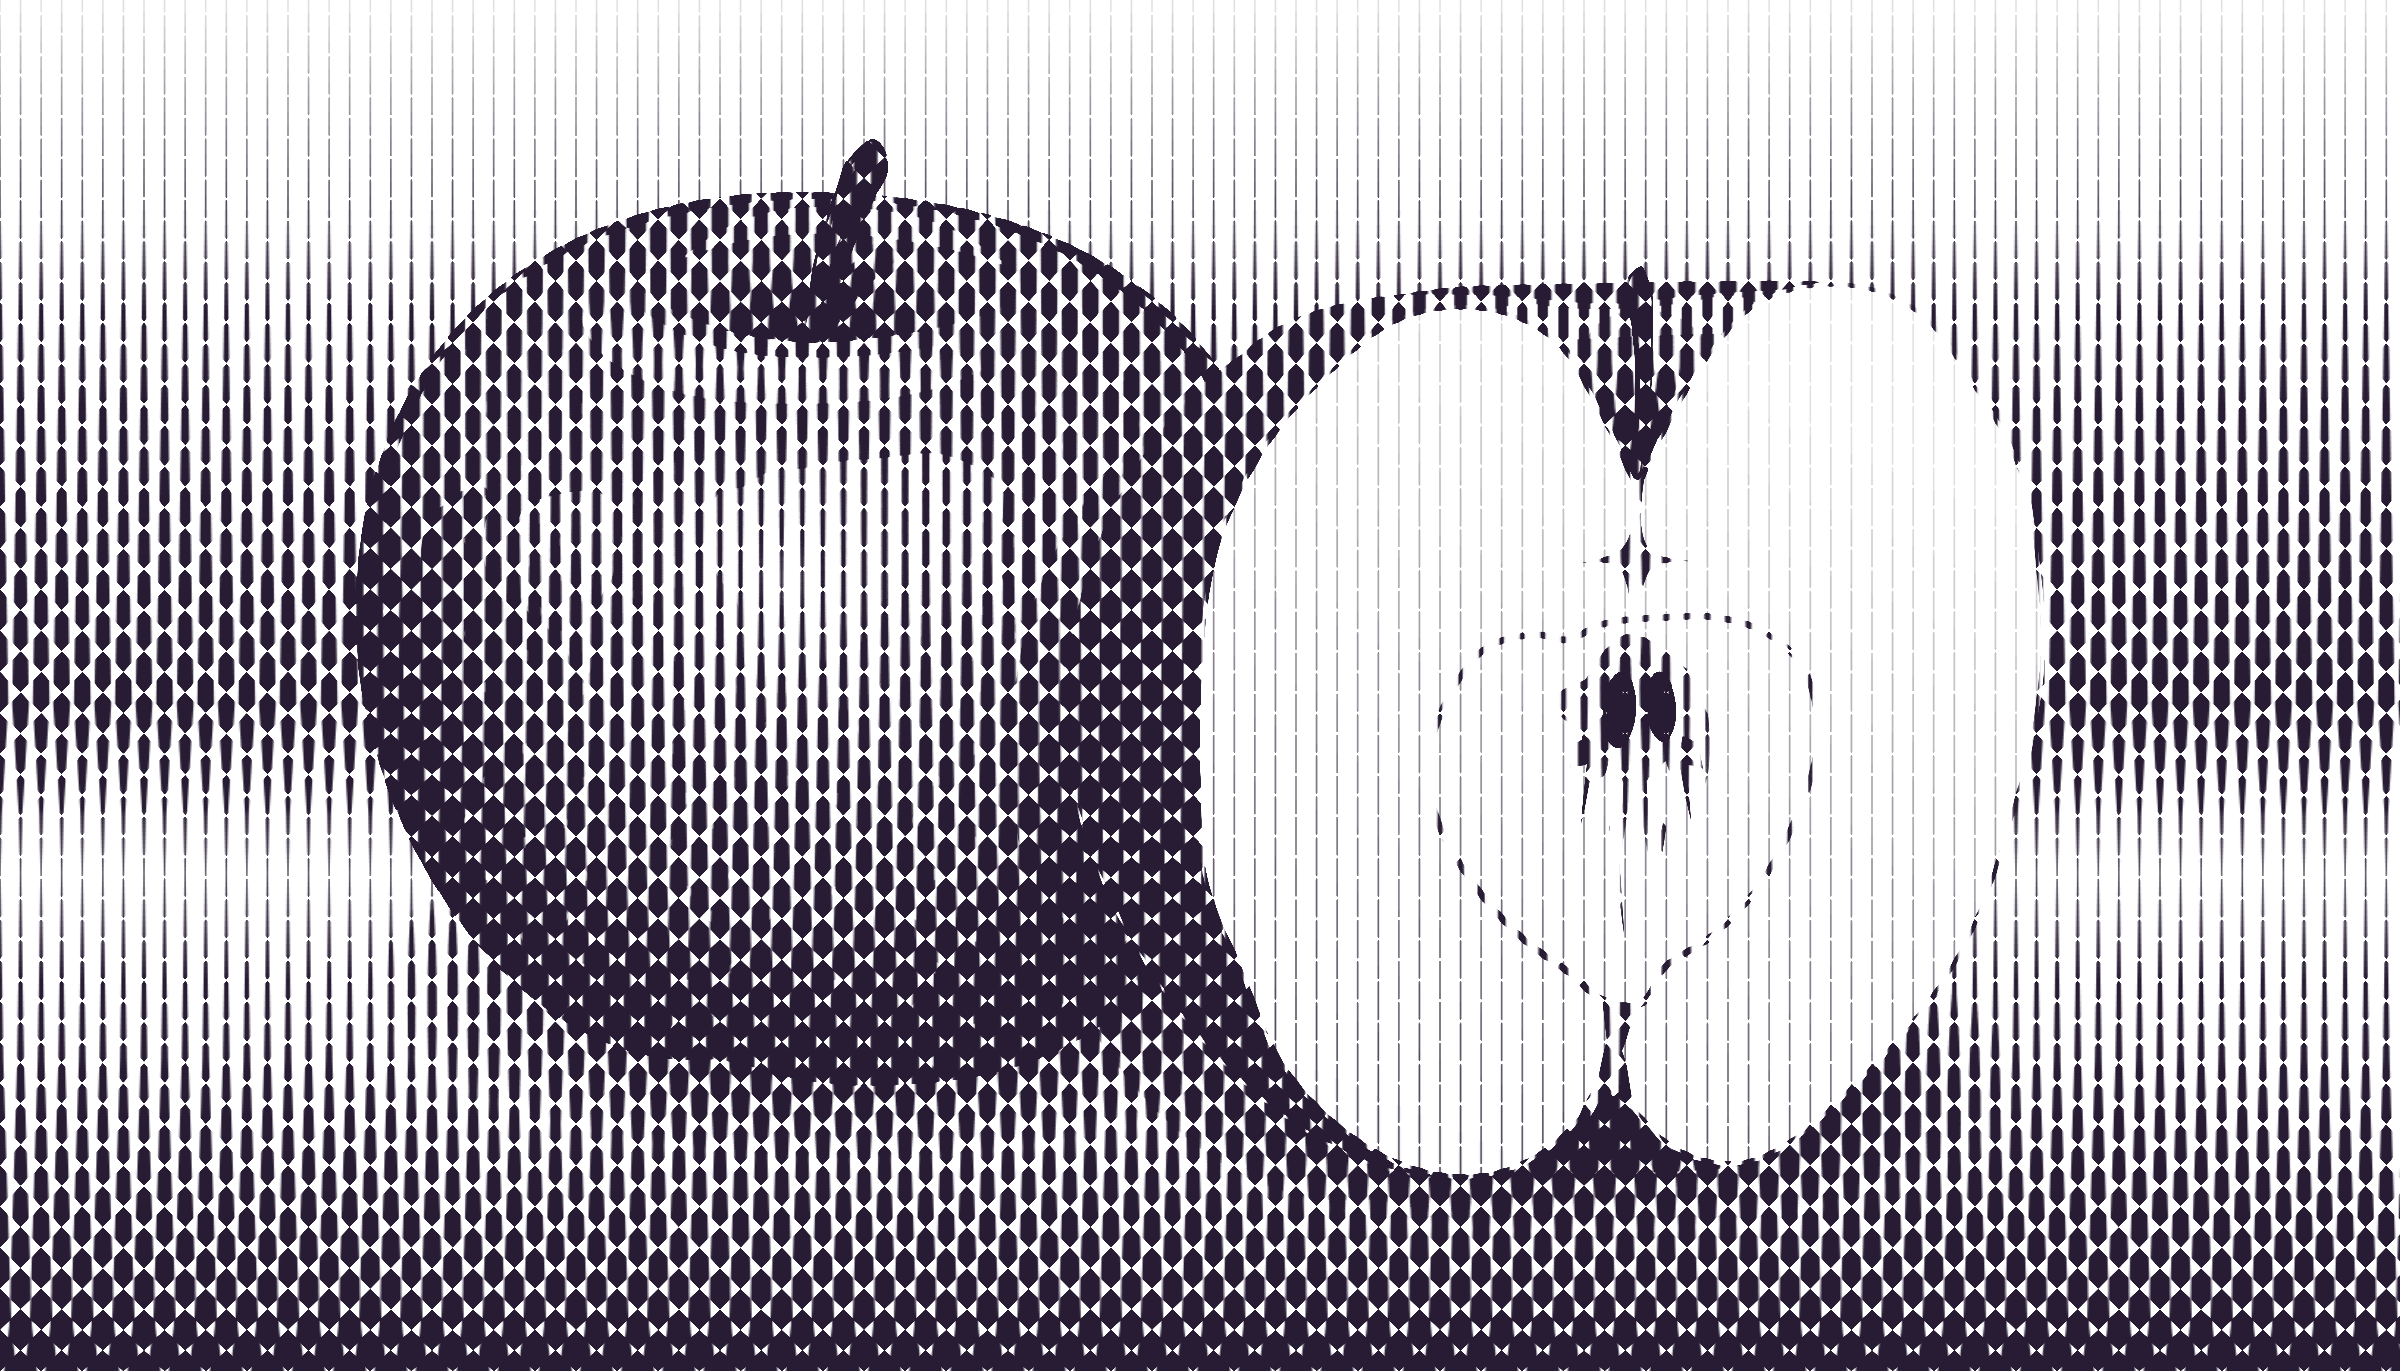 halftone apple 3 by Lazur URH